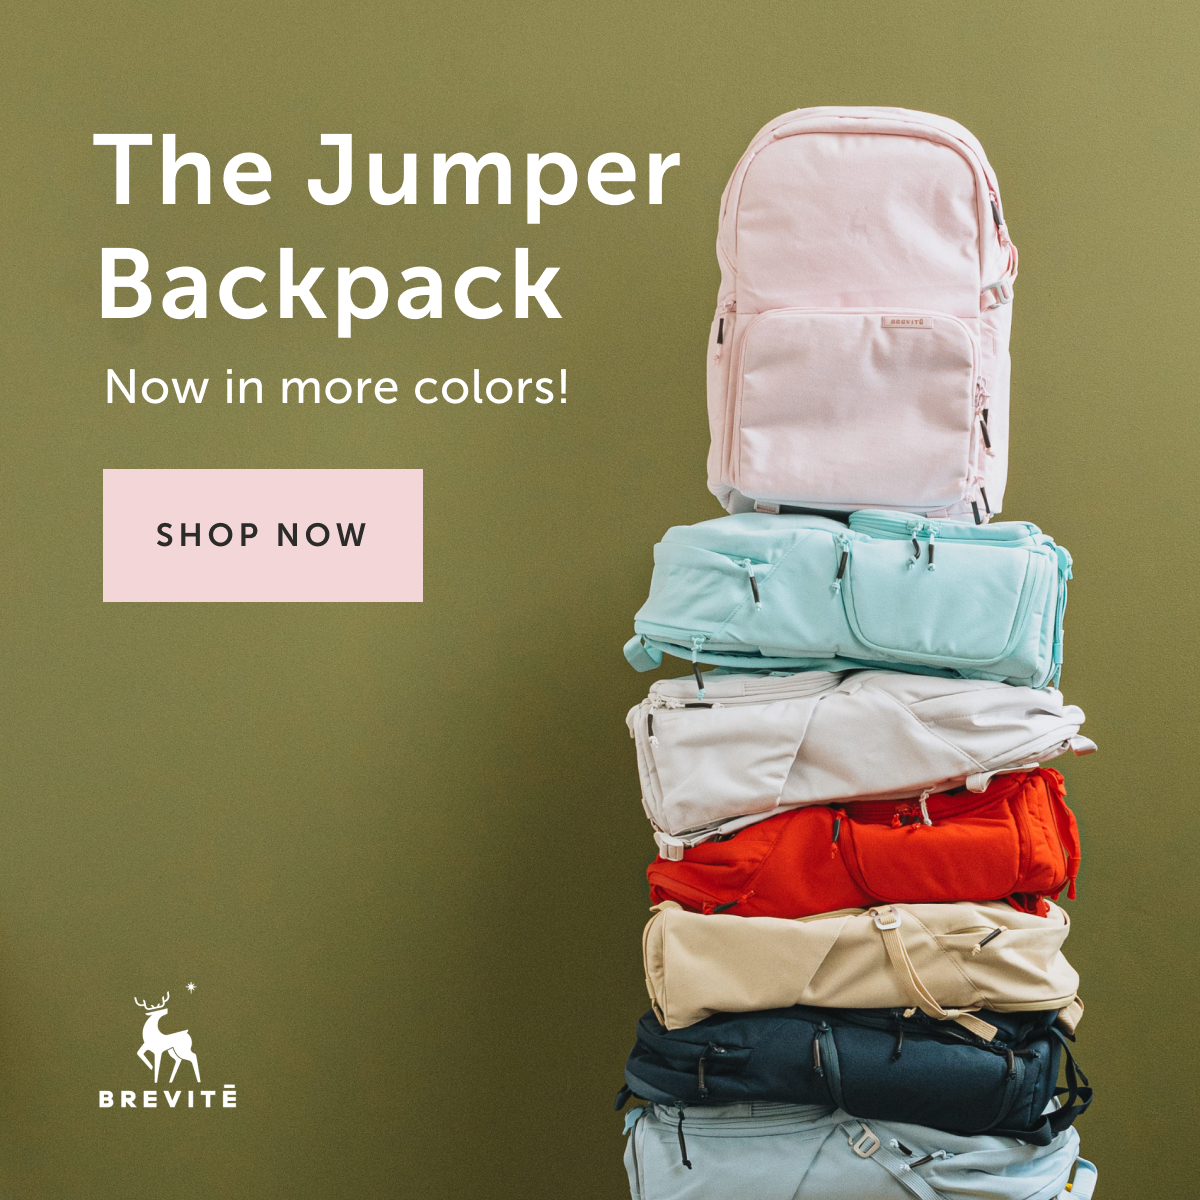 The Jumper Backpack — Now in more colors!